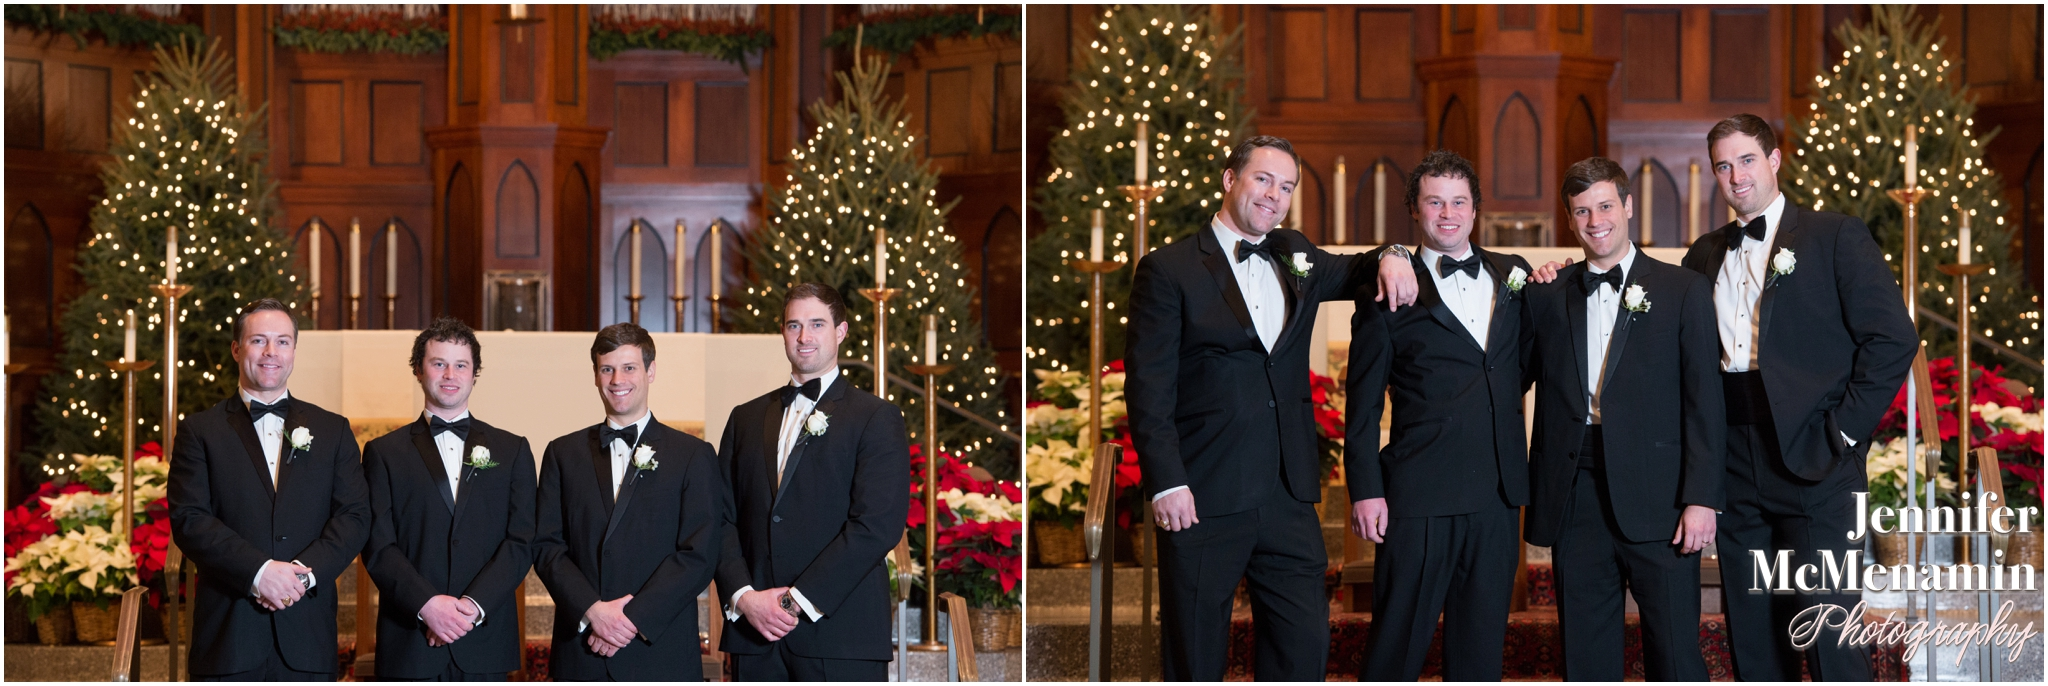 0062_RyanClemmens_01811-0484_JenniferMcMenaminPhotography_Immaculate-Conception-Church_The-Cloisters_Baltimore-wedding-photography_Baltimore-wedding-photographer